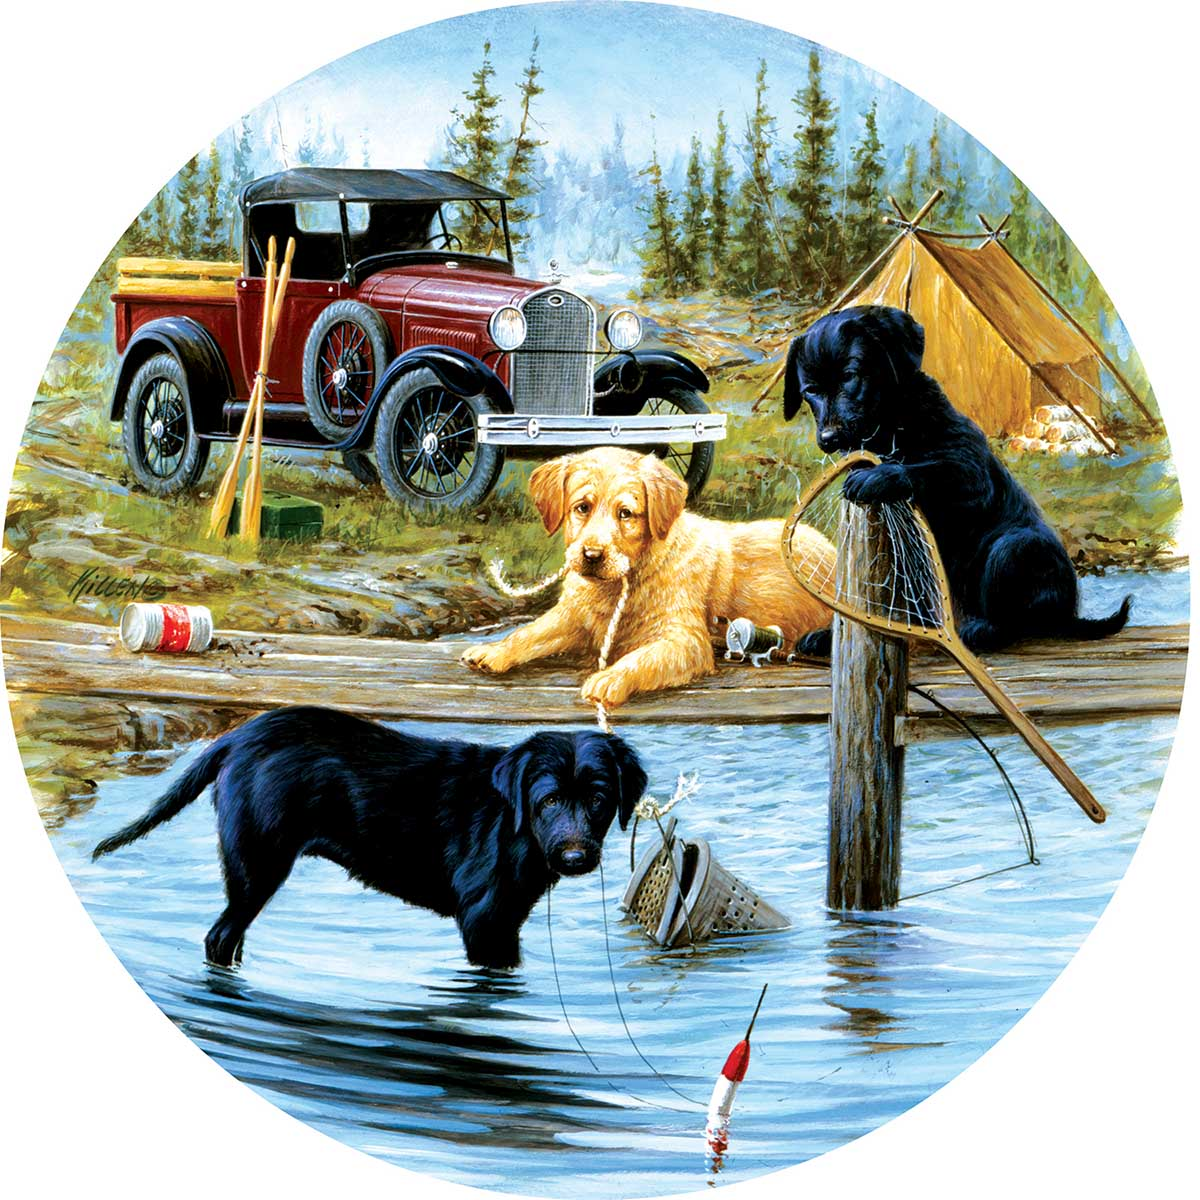 Camping Trip Dogs Round Jigsaw Puzzle